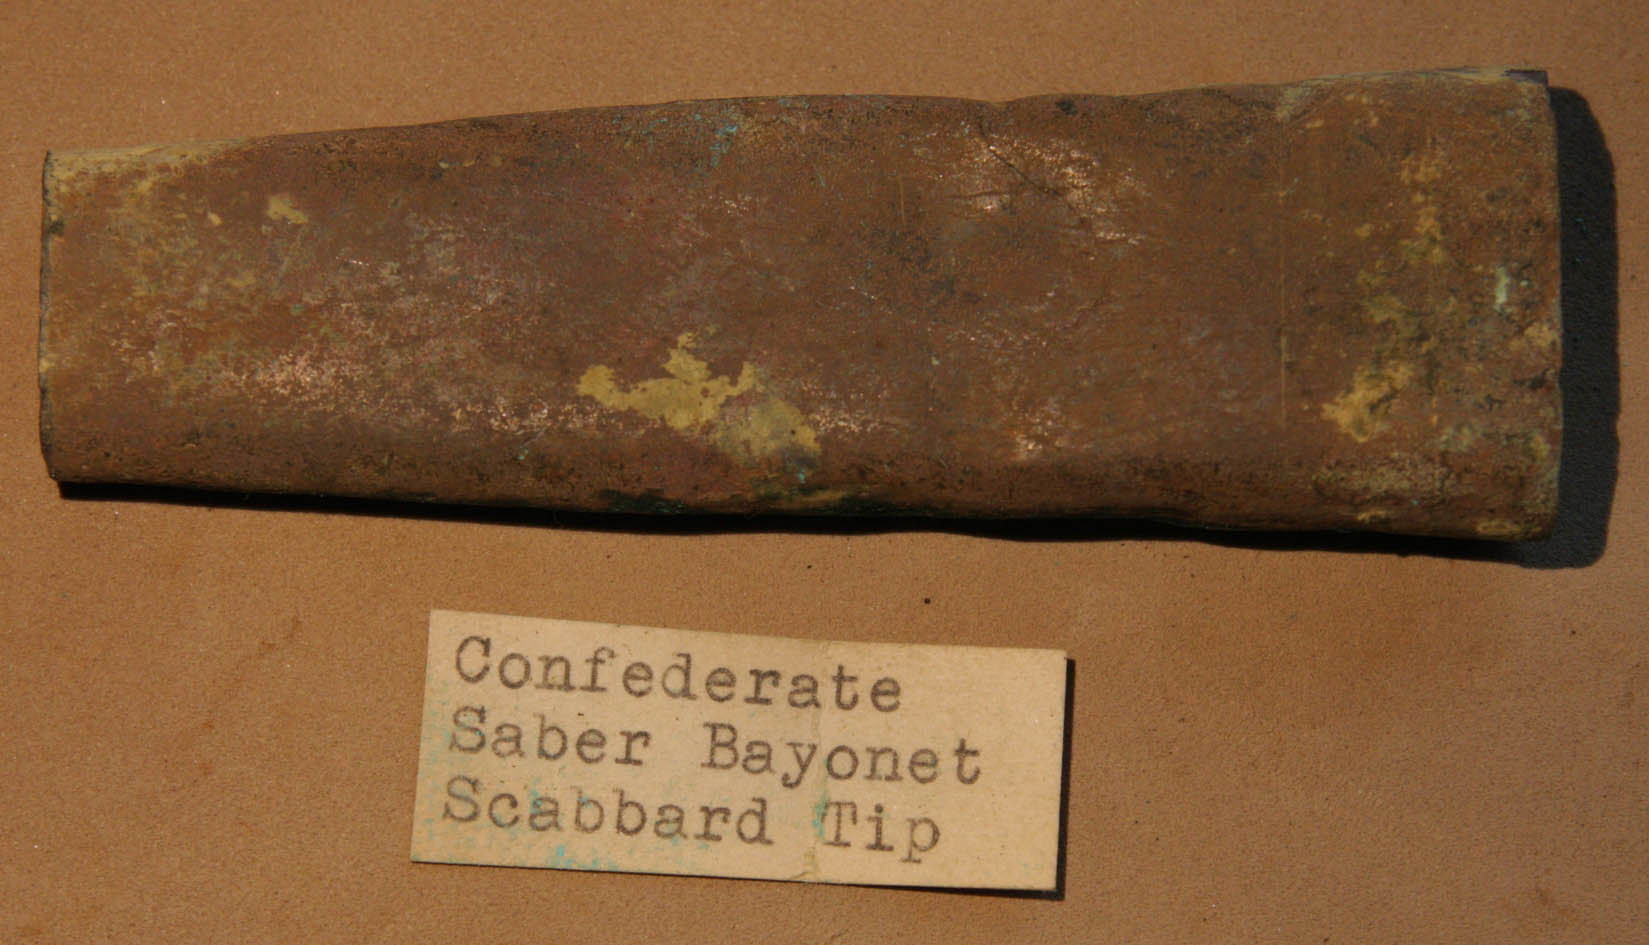 JUST ADDED ON 10/6 - THE BATTLE OF SPOTSYLVANIA - LAUREL HILL - Large Sword Bayonet Scabbard Tip with Leather - with ORIGINAL COLLECTION LABEL plus a copy of the original location label RG-SLH06